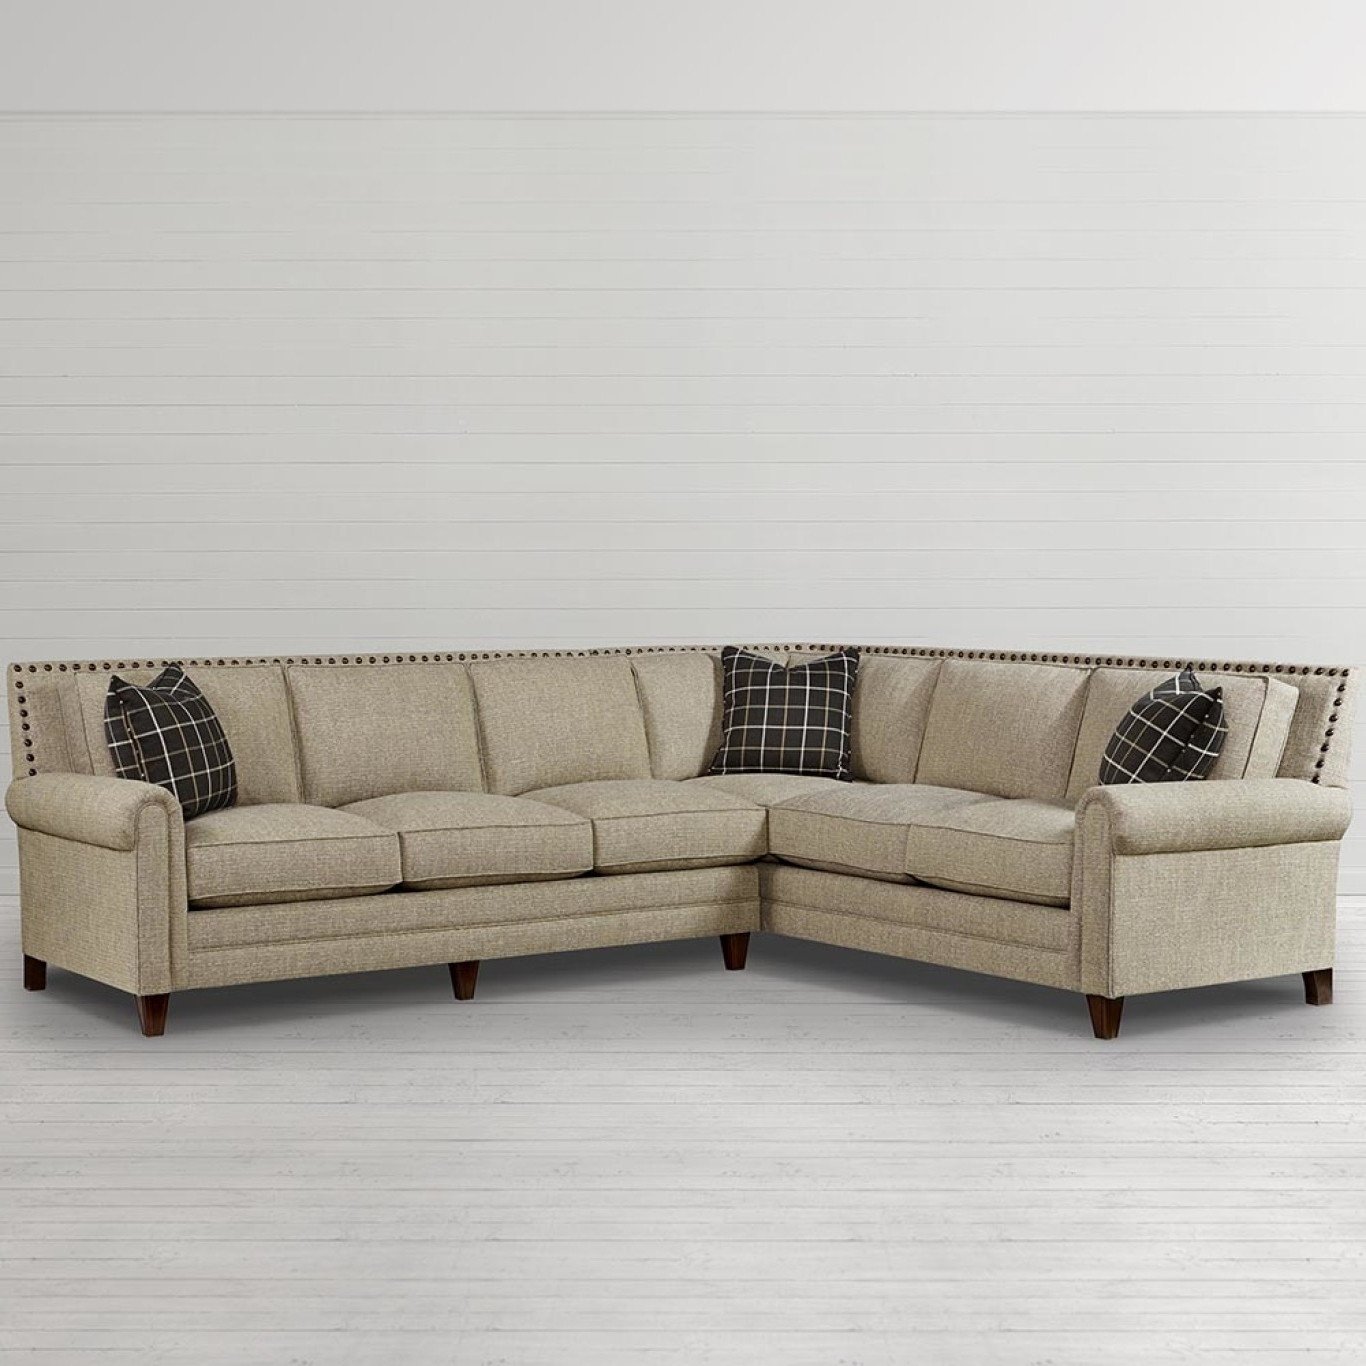 Fashionable Sectional Sofas In Greenville Sc With Bassett Furniture Greenville Sc (View 12 of 20)